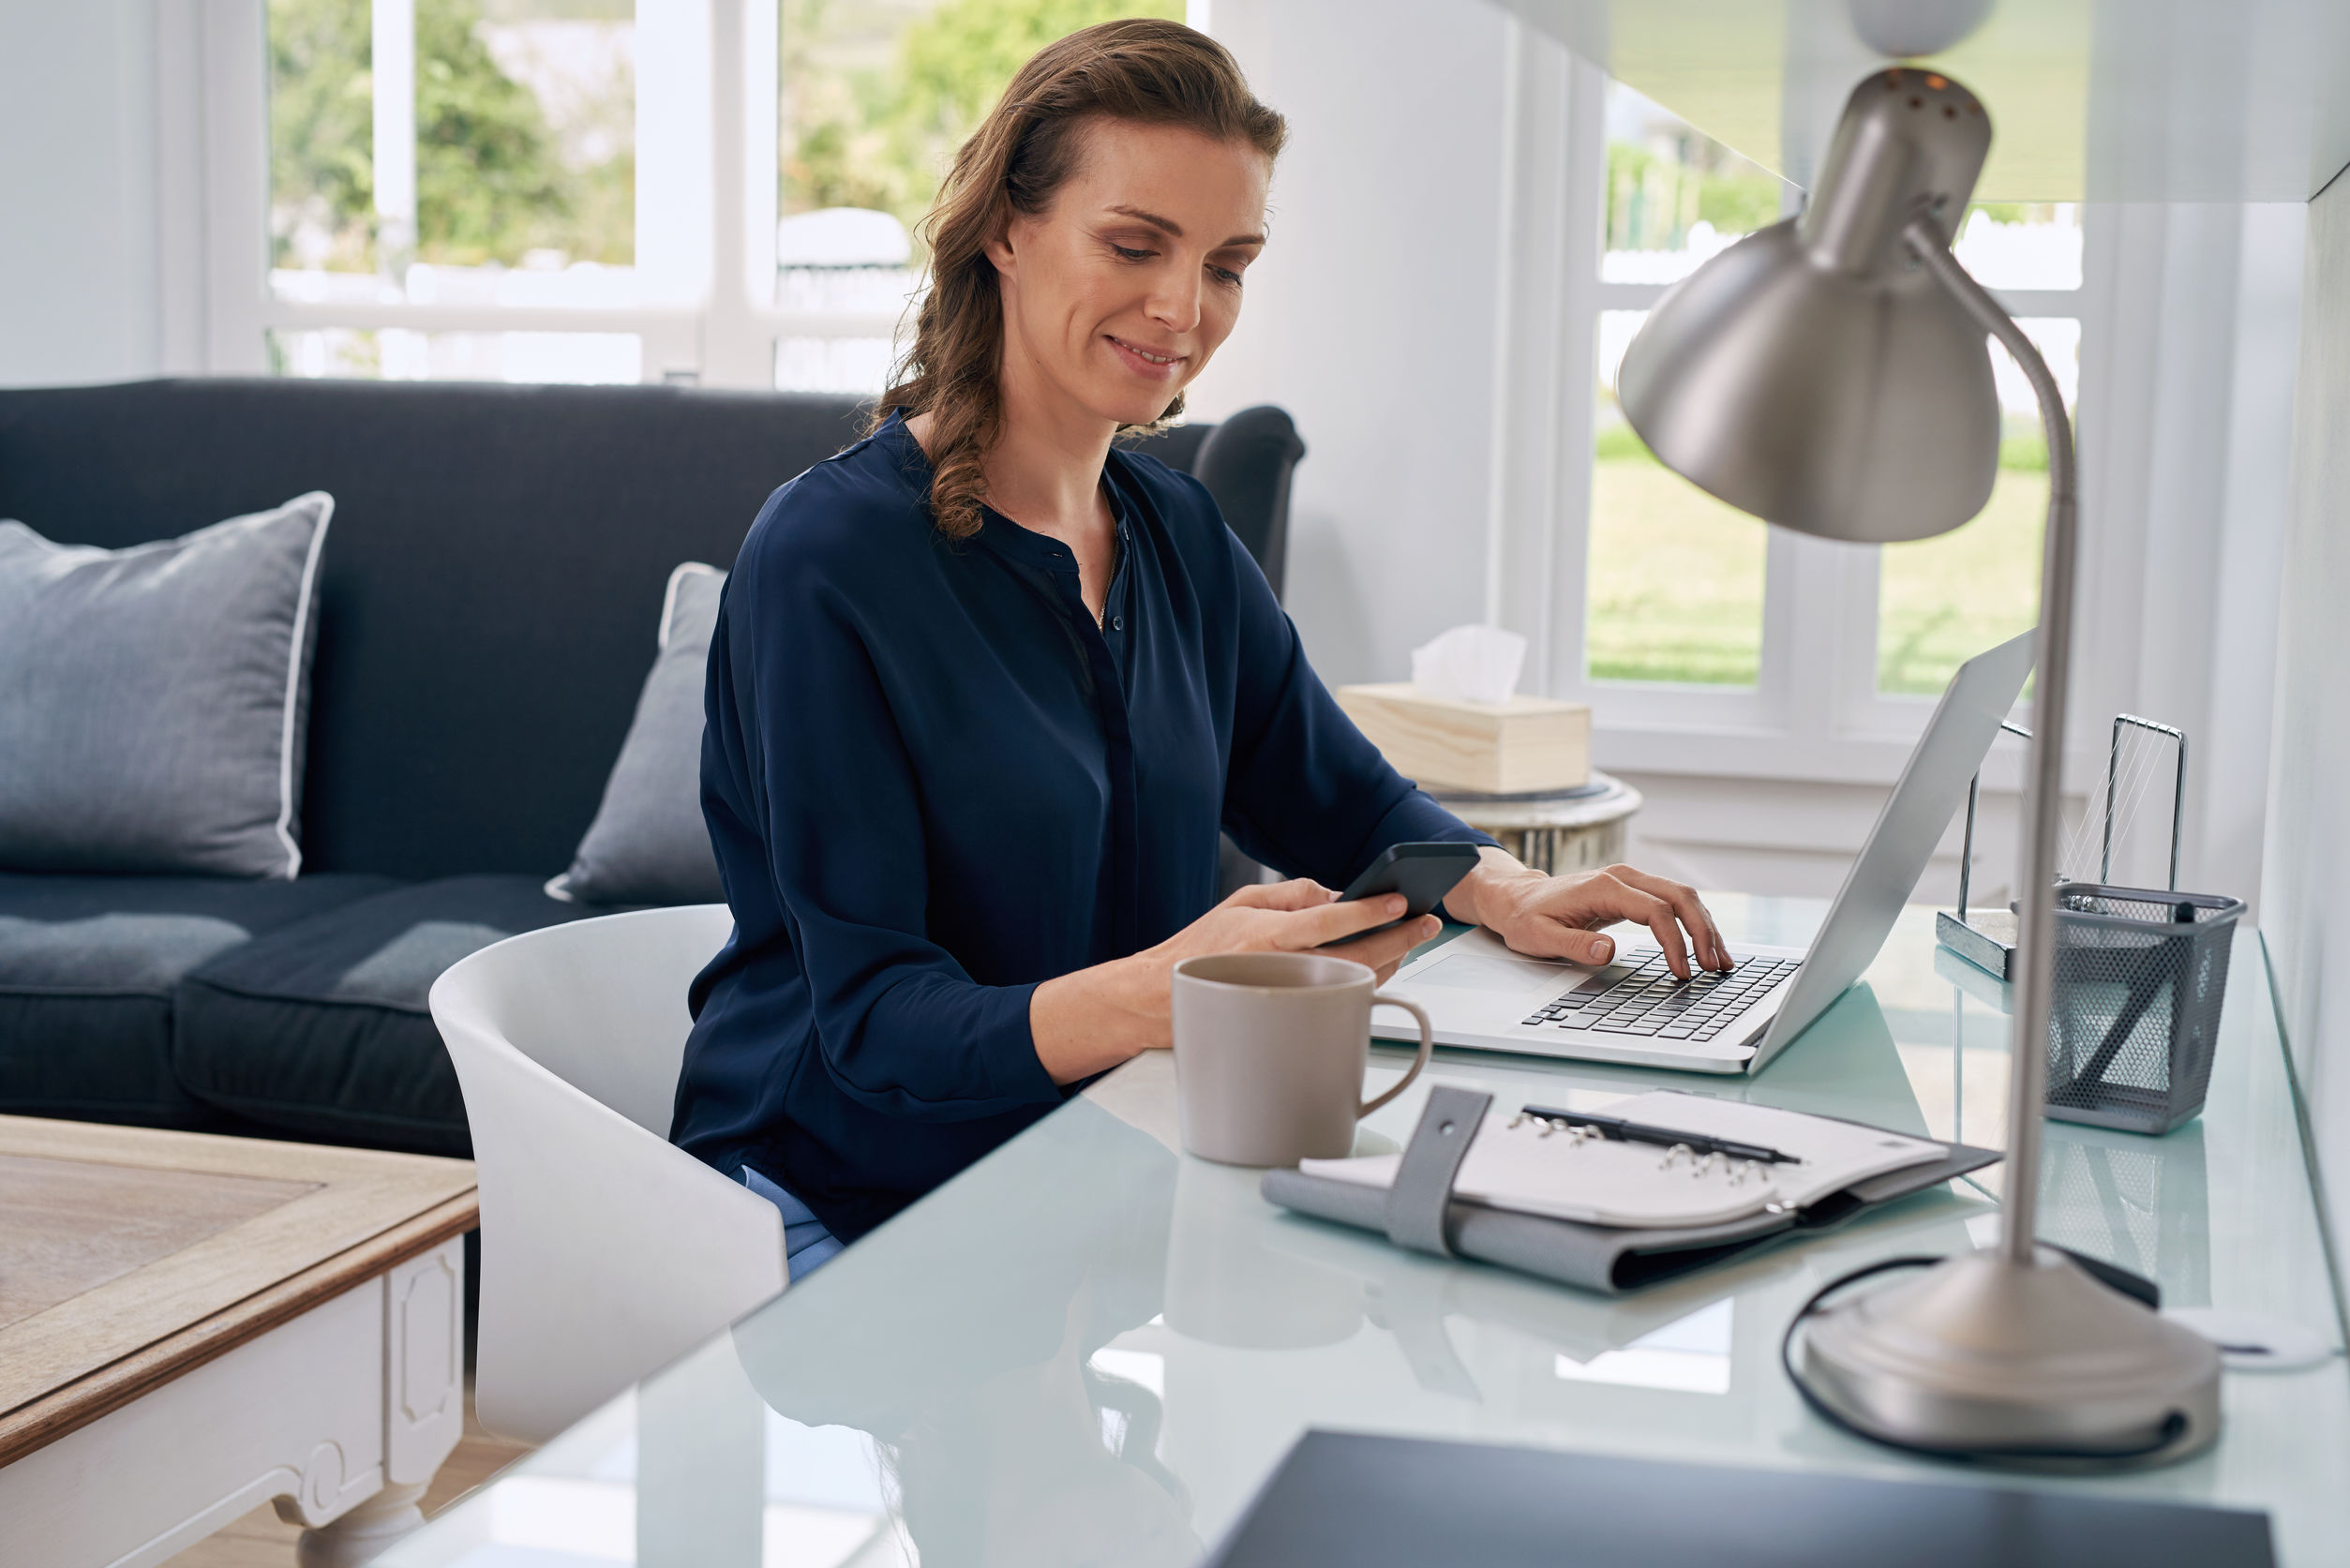 5 Ways to Boost Employee Productivity at Home or in the Office